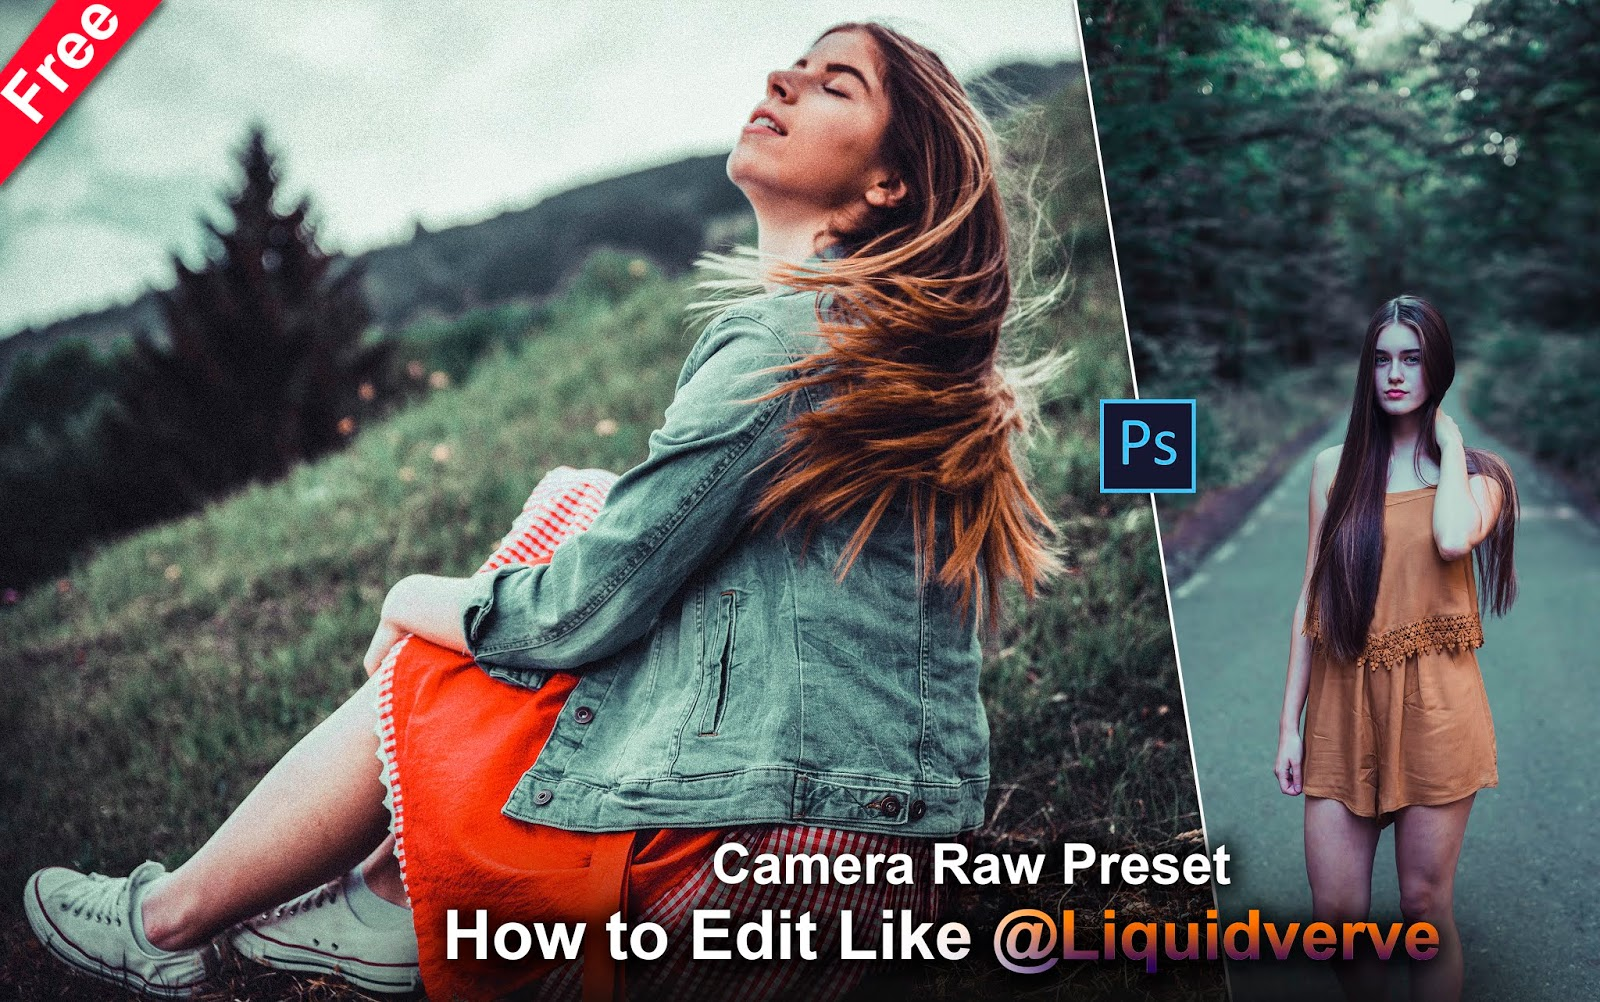 Download Liquidverve Inspired Camera Raw Preset for Free | How to Edit Your Photos Like @Liquidverve in Photoshop